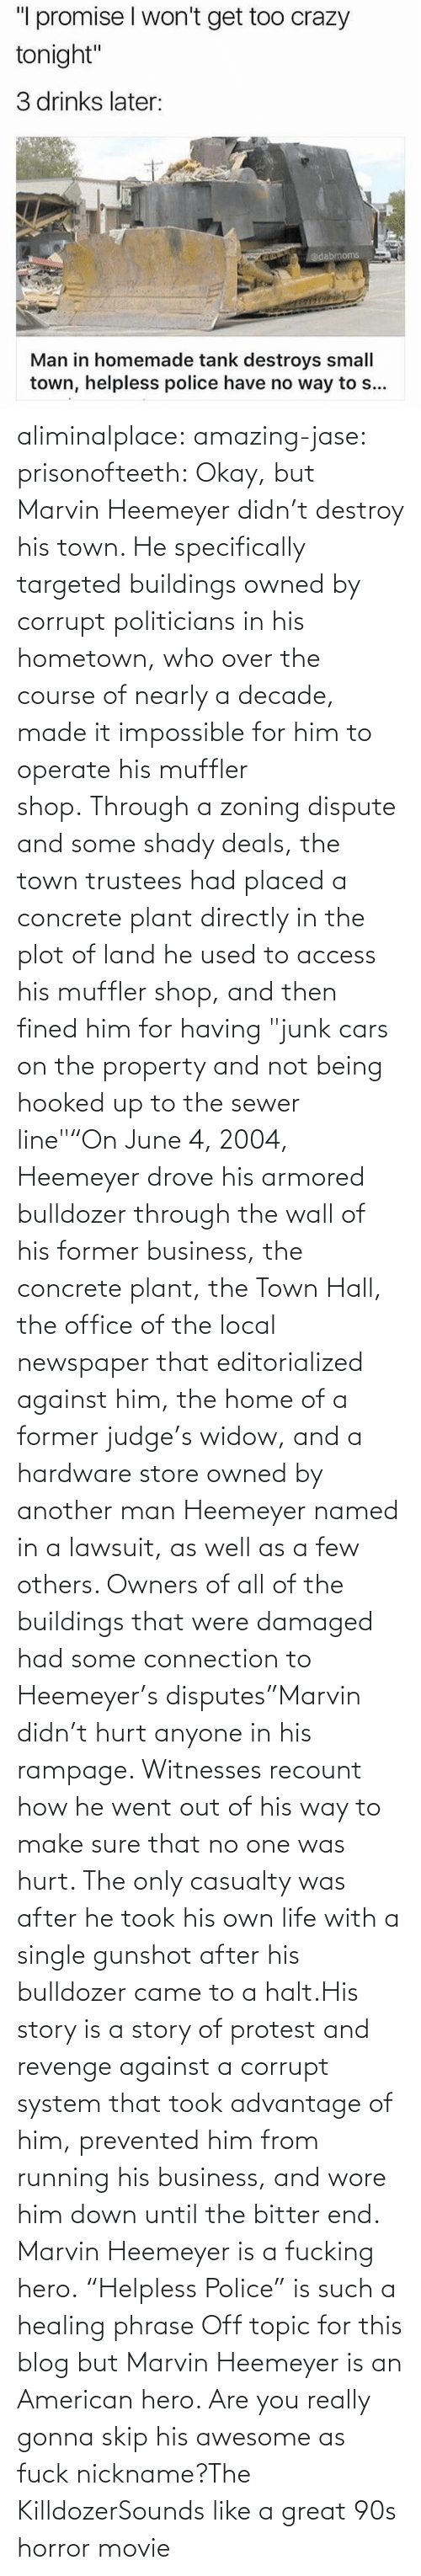 "A Few: aliminalplace: amazing-jase:  prisonofteeth: Okay, but Marvin Heemeyer didn't destroy his town. He specifically targeted buildings owned by corrupt politicians in his hometown, who over the course of nearly a decade, made it impossible for him to operate his muffler shop. Through a zoning dispute and some shady deals, the town trustees had placed a concrete plant directly in the plot of land he used to access his muffler shop, and then fined him for having ""junk cars on the property and not being hooked up to the sewer line""""On June 4, 2004, Heemeyer drove his armored bulldozer through the wall of his former business, the concrete plant, the Town Hall, the office of the local newspaper that editorialized against him, the home of a former judge's widow, and a hardware store owned by another man Heemeyer named in a lawsuit, as well as a few others. Owners of all of the buildings that were damaged had some connection to Heemeyer's disputes""Marvin didn't hurt anyone in his rampage. Witnesses recount how he went out of his way to make sure that no one was hurt. The only casualty was after he took his own life with a single gunshot after his bulldozer came to a halt.His story is a story of protest and revenge against a corrupt system that took advantage of him, prevented him from running his business, and wore him down until the bitter end. Marvin Heemeyer is a fucking hero. ""Helpless Police"" is such a healing phrase    Off topic for this blog but Marvin Heemeyer is an American hero.     Are you really gonna skip his awesome as fuck nickname?The KilldozerSounds like a great 90s horror movie"